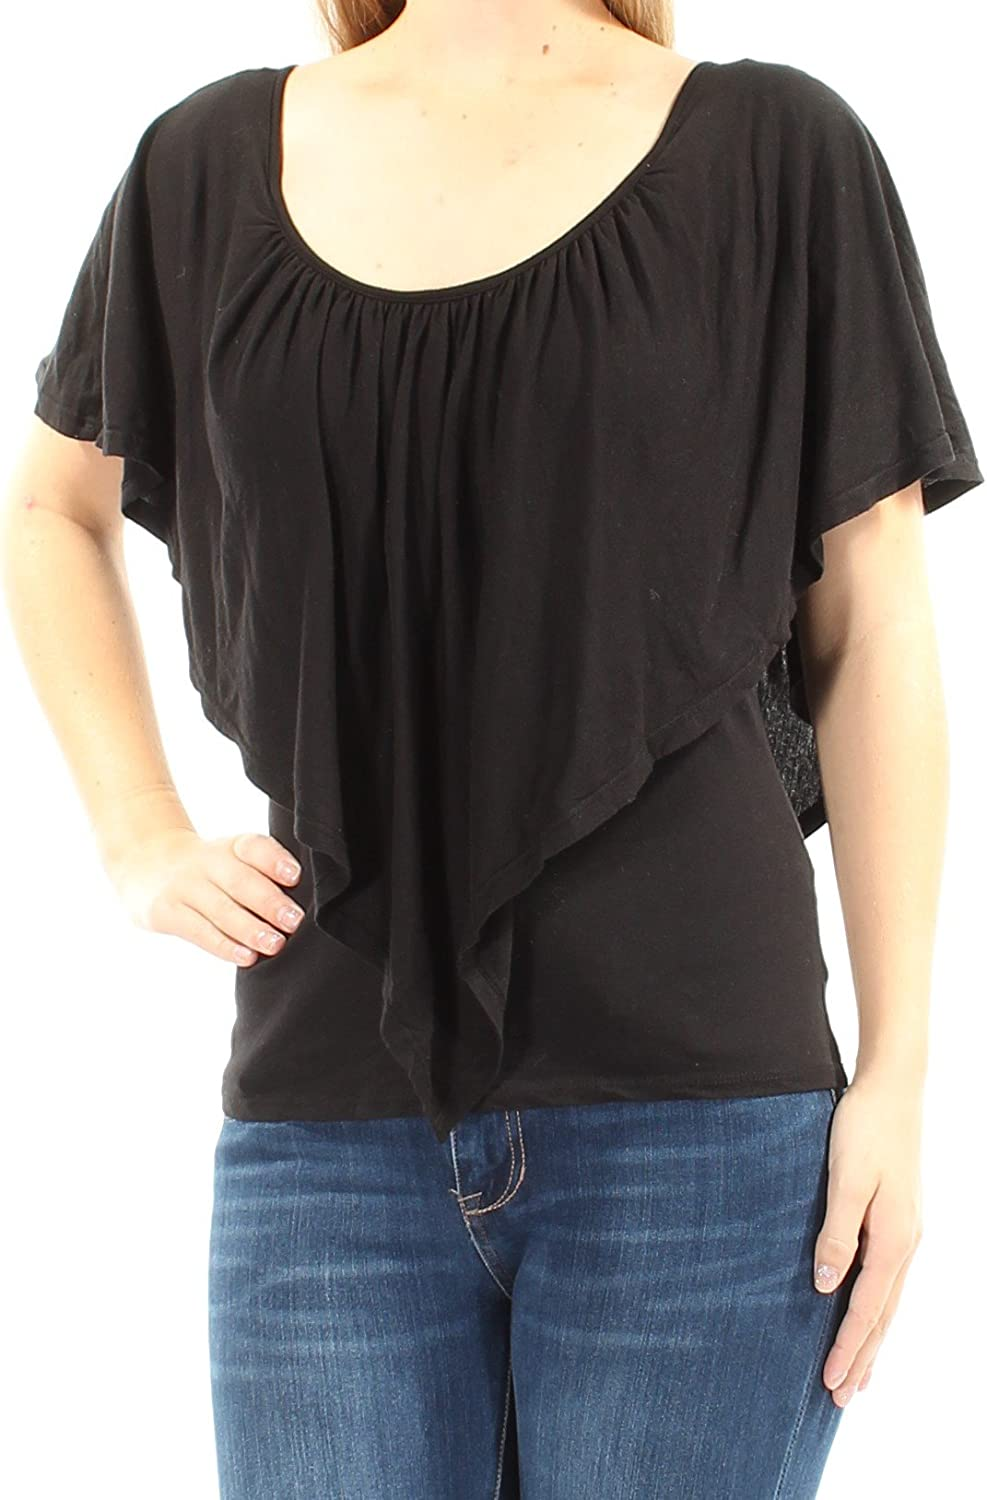 Chelsea Sky Womens Solid Open Back Blouse Black M